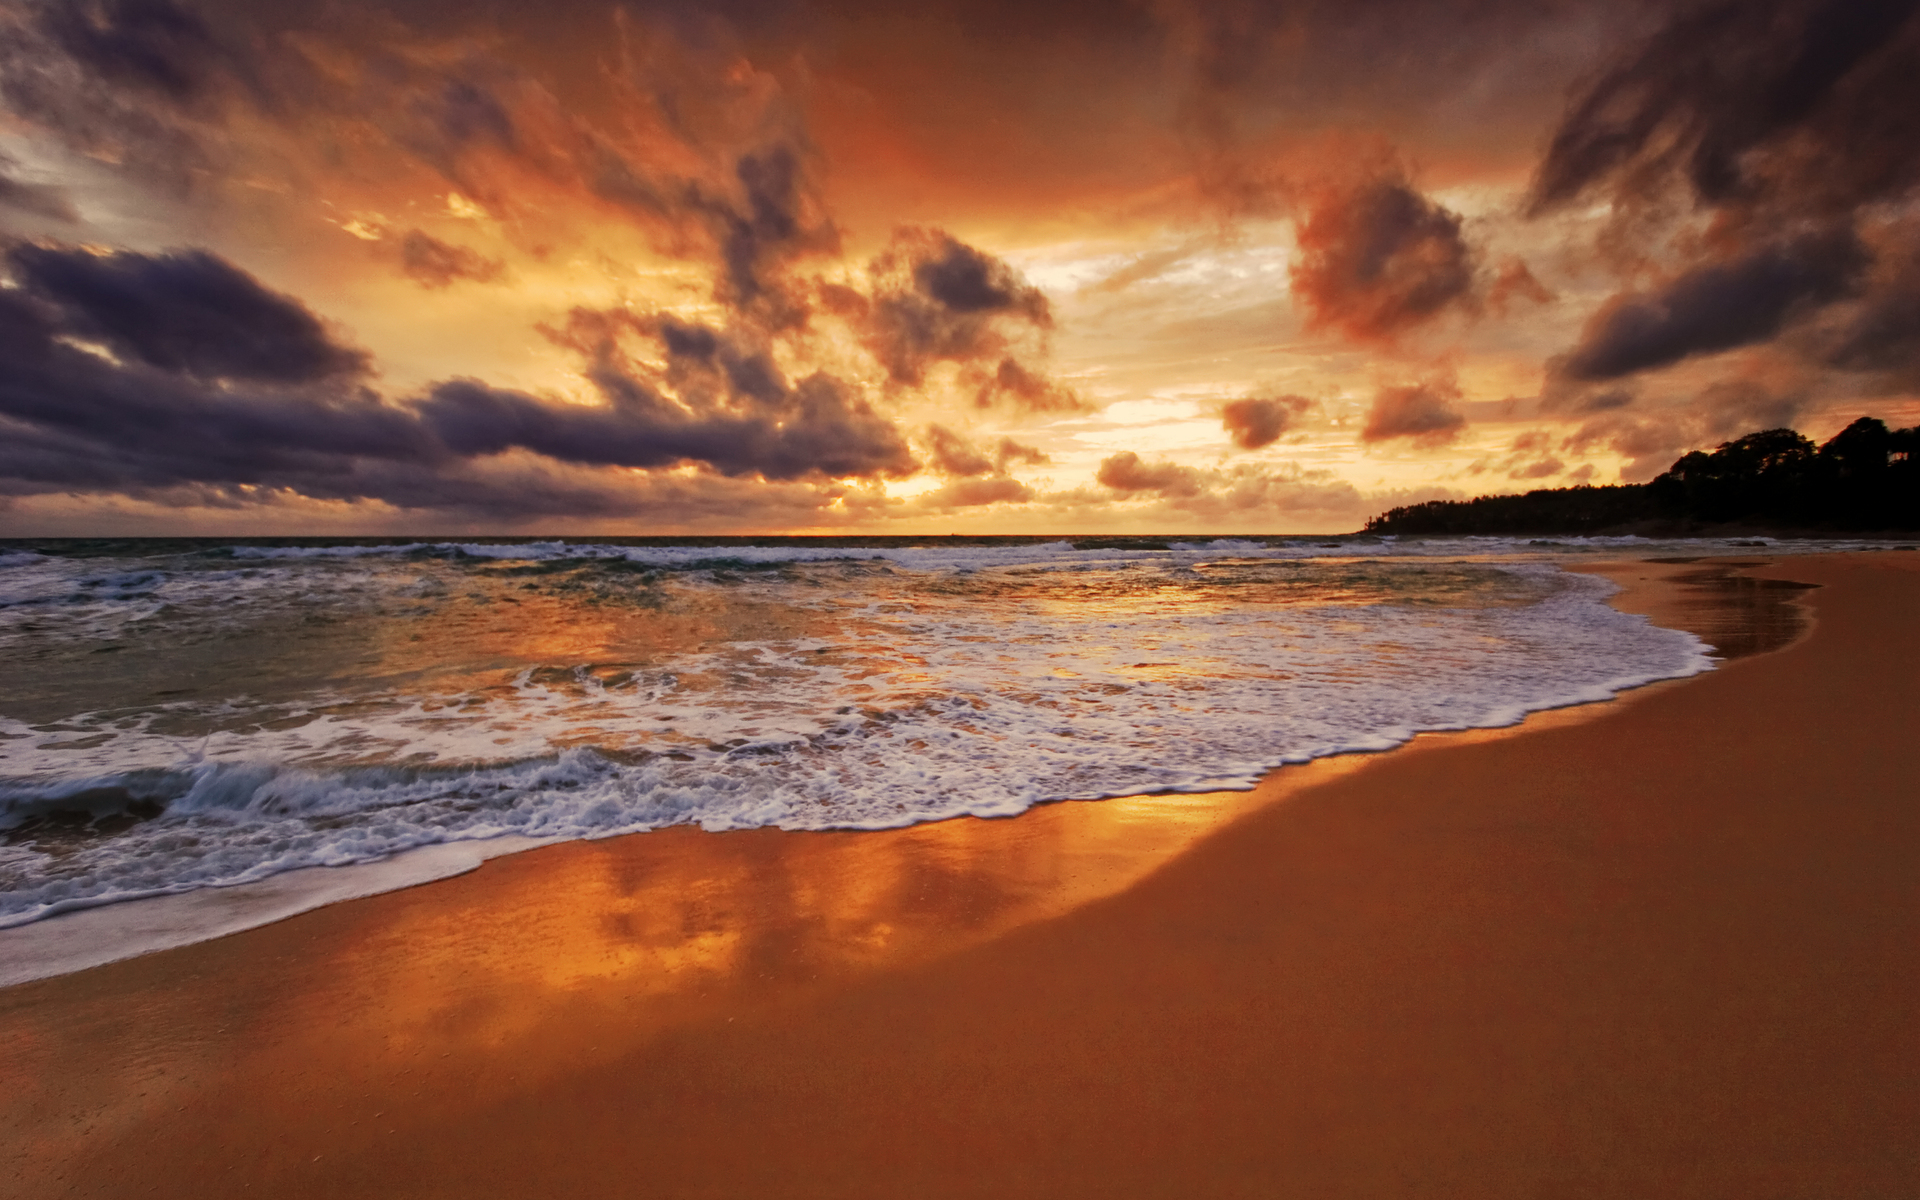 Beach Sunset 1920x1200 2314 HD Wallpaper Res 1920x1200 DesktopAS 1920x1200